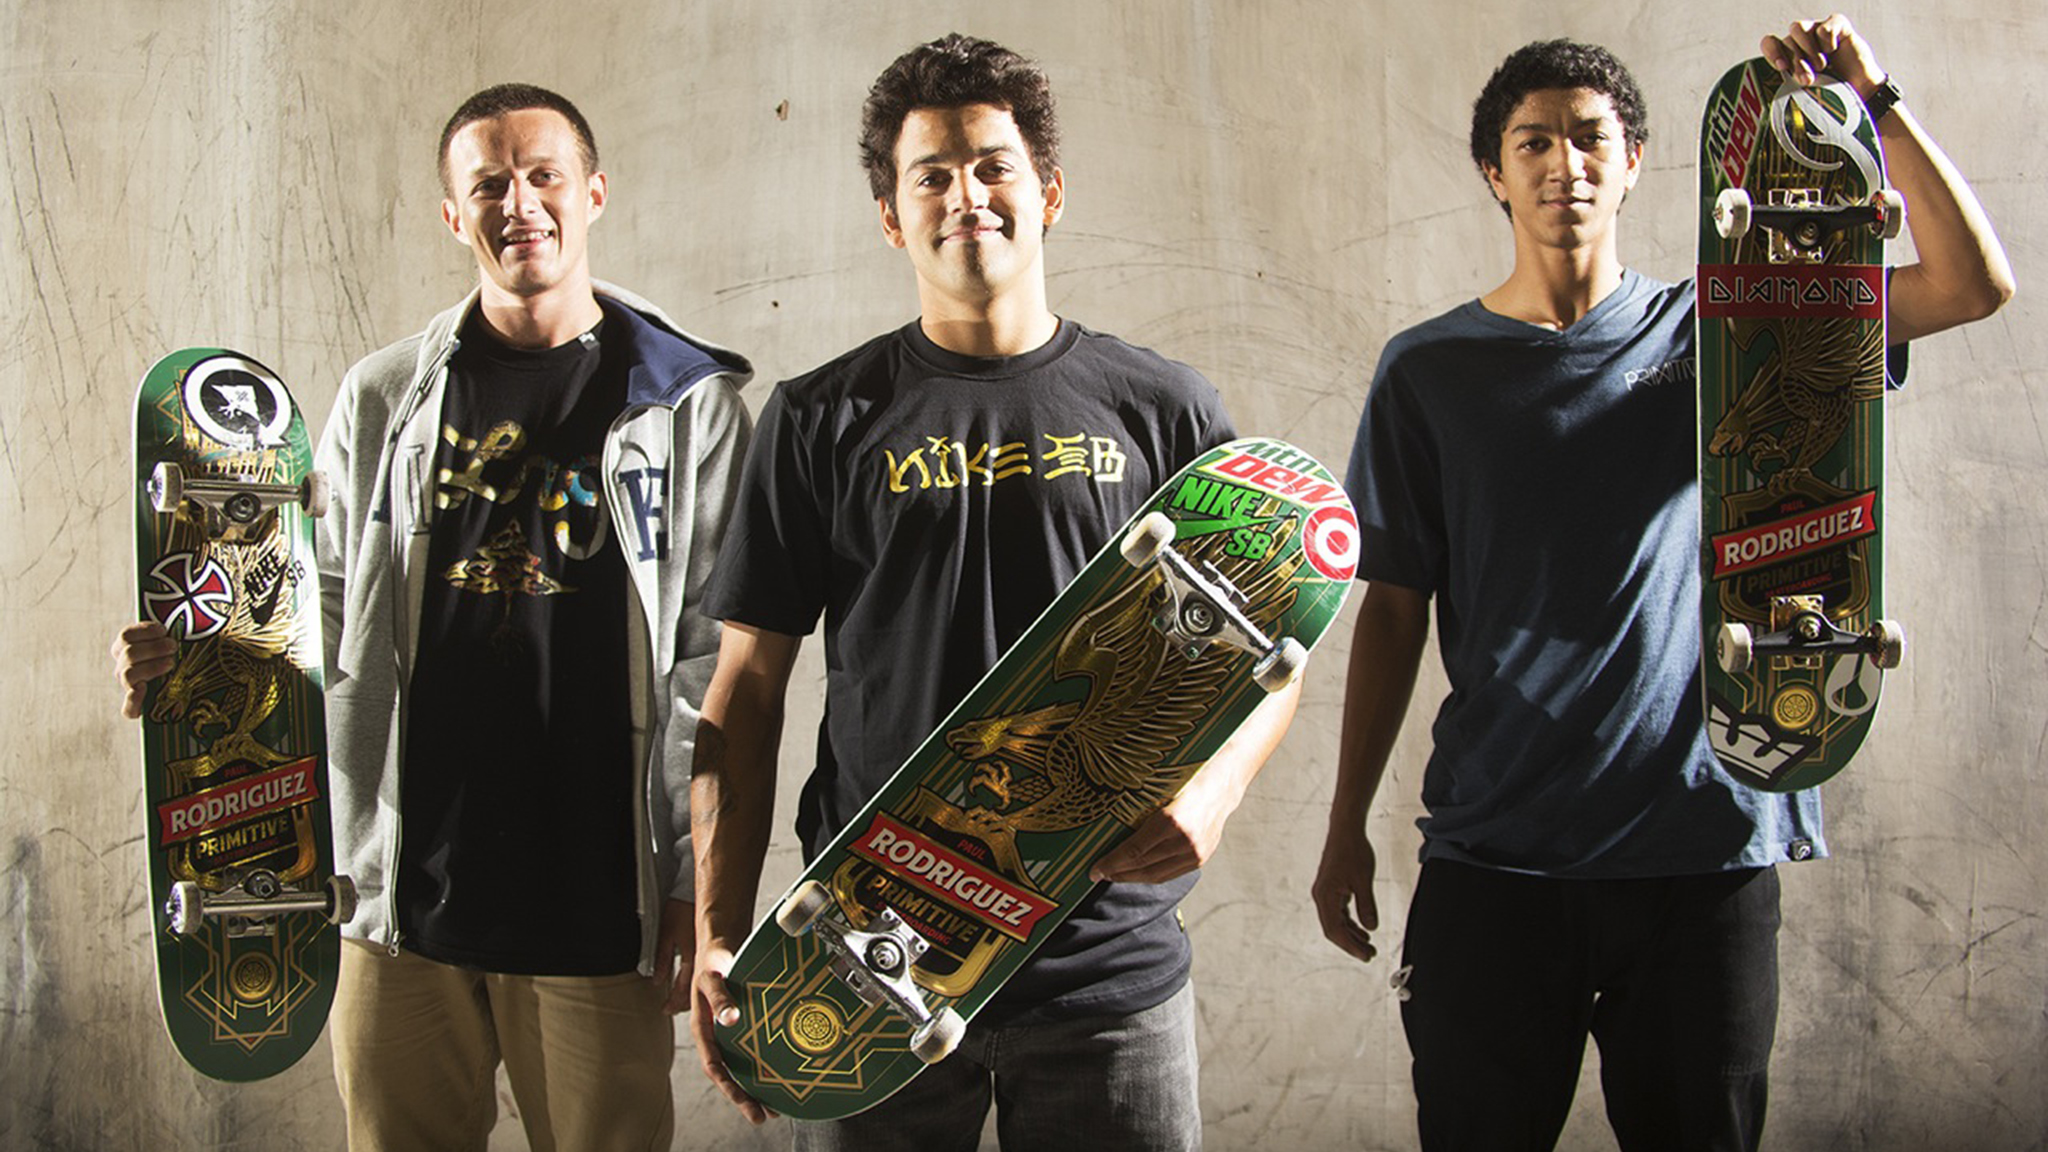 The new Primitive Skateboarding team, from left to right: Carlos Ribeiro, Paul Rodriguez and Nick Tucker.